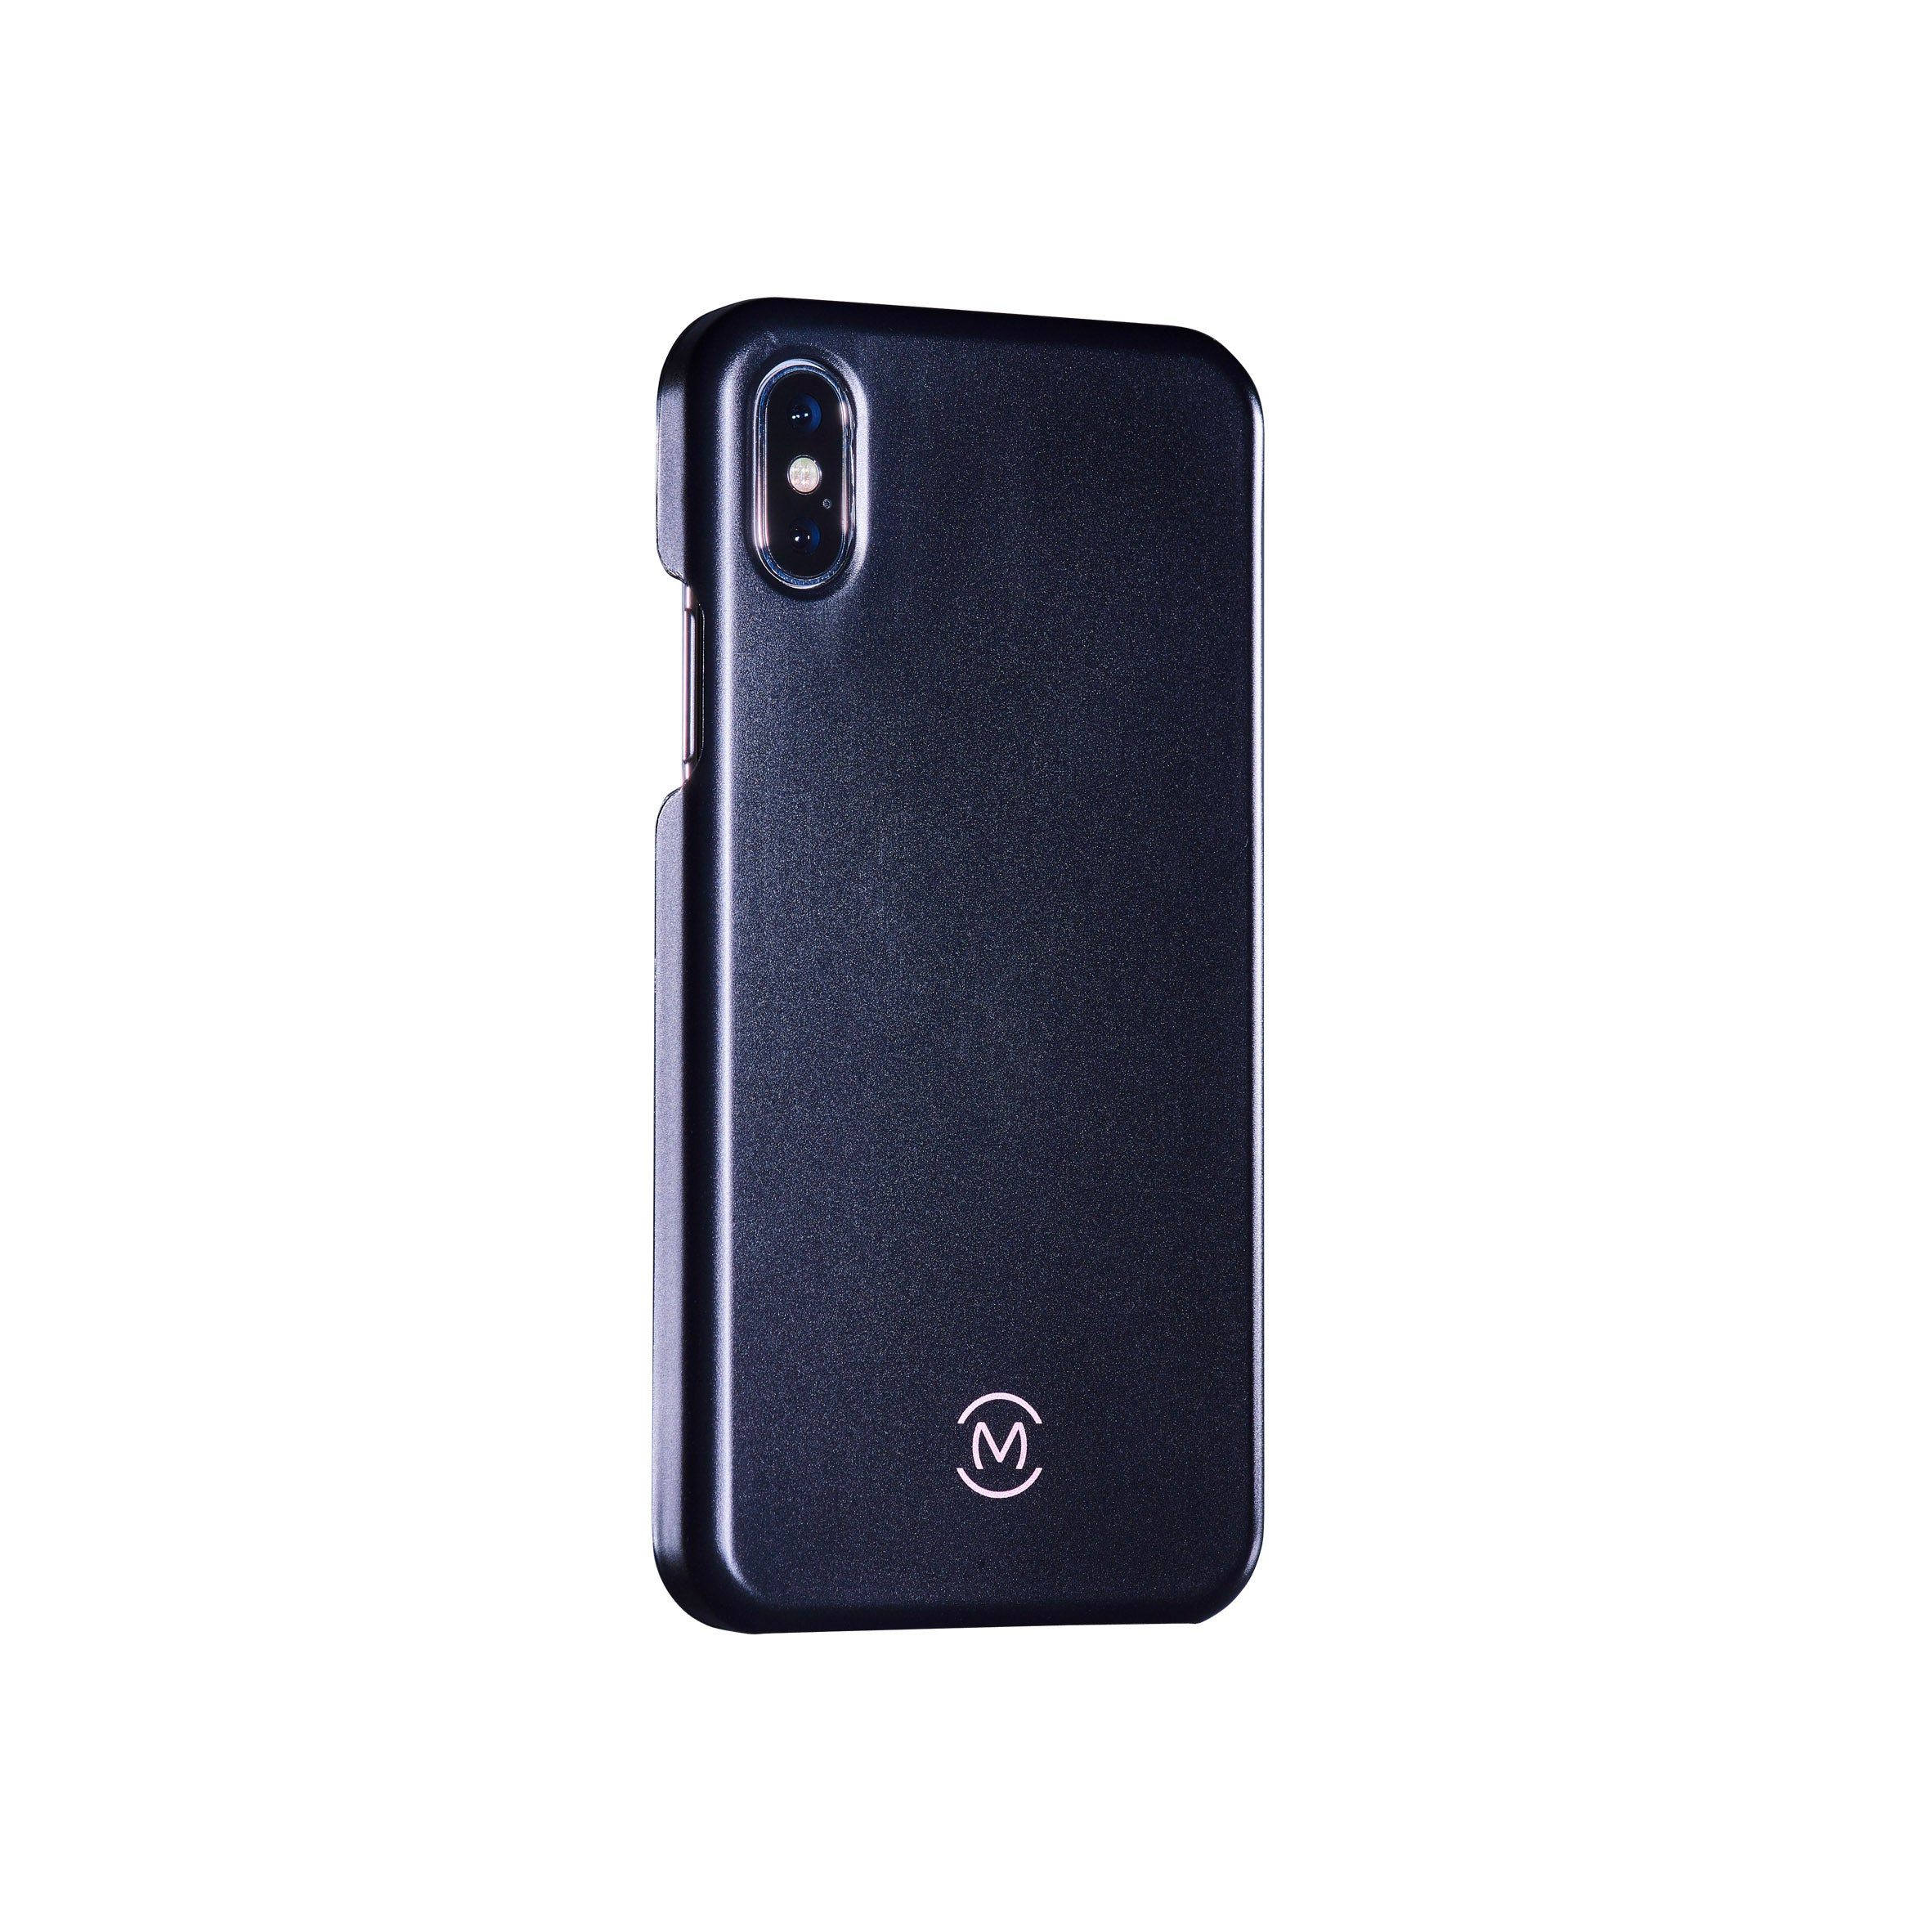 Black Matte Obsidian Phone Case by Movement for iPhone X (Right)